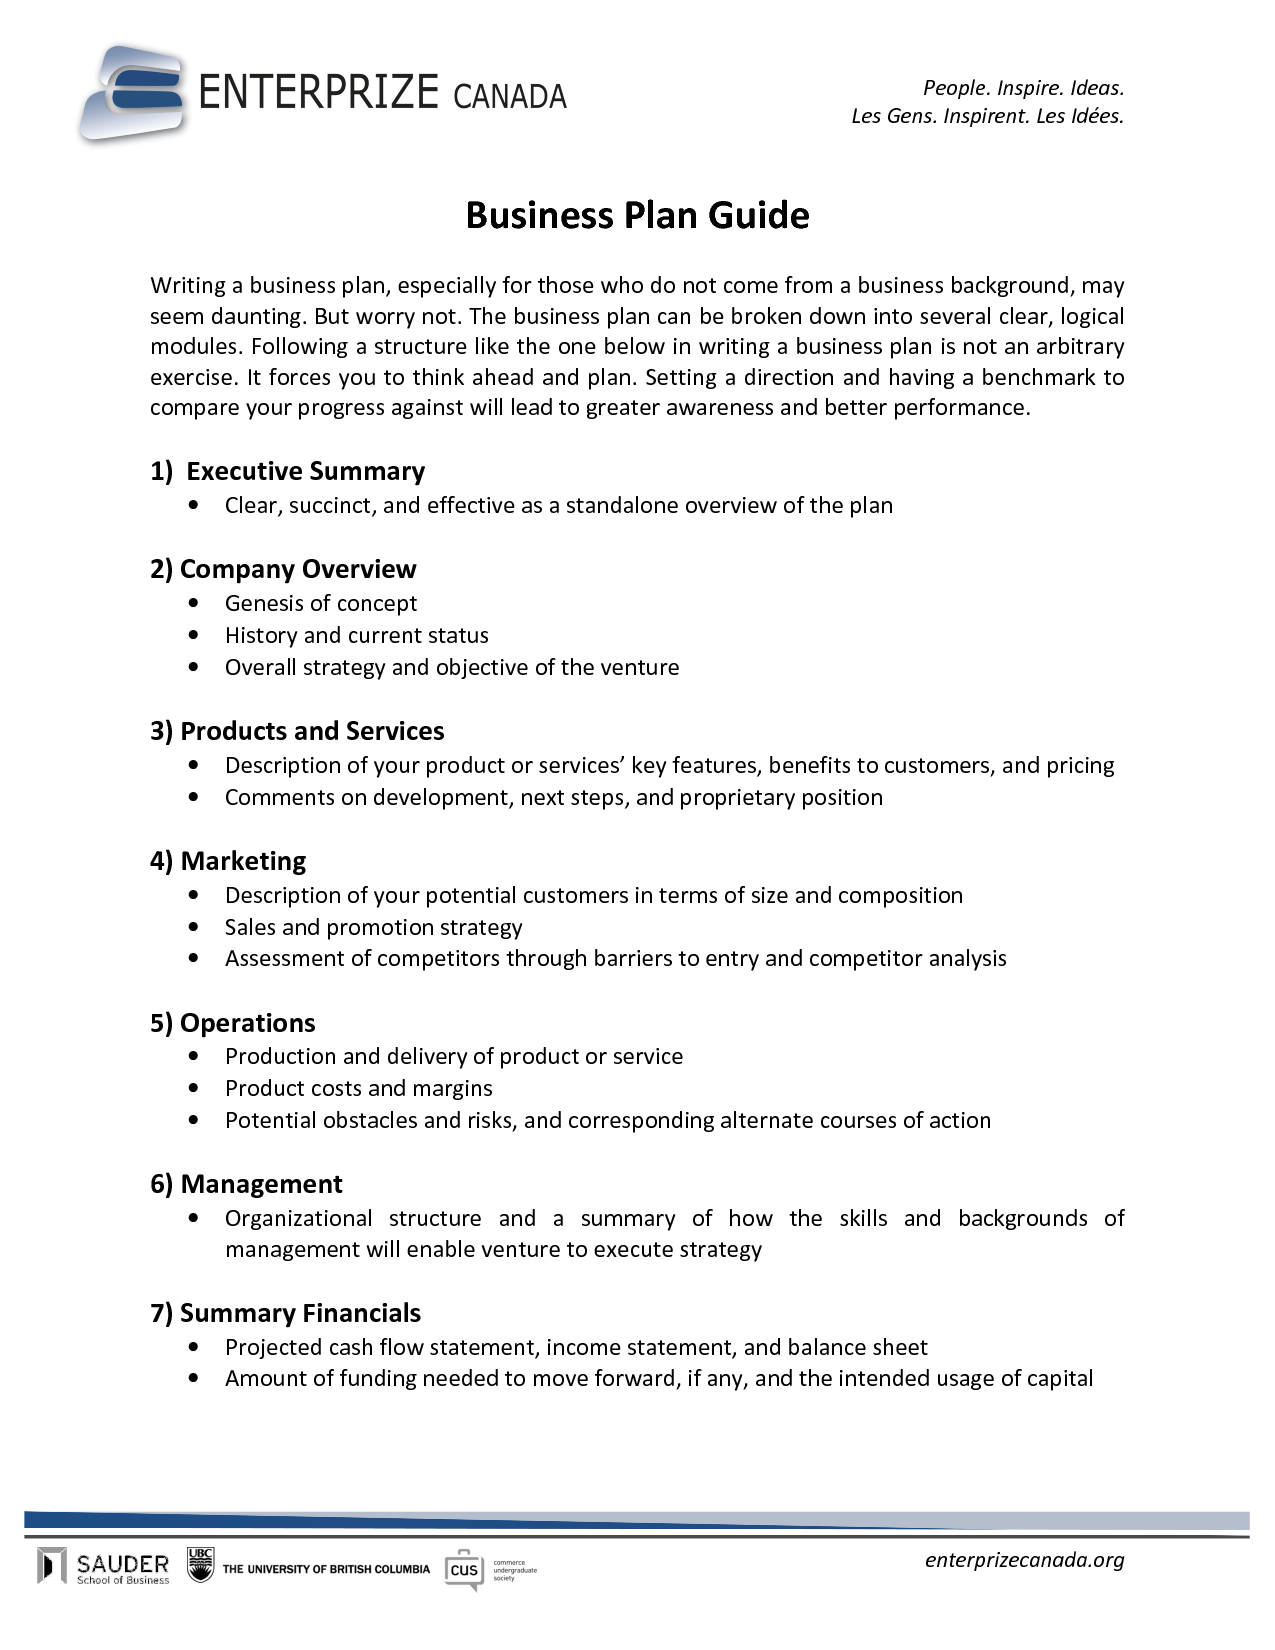 Writing a business plan template kubreforic writing a business plan template business plan format flashek Choice Image